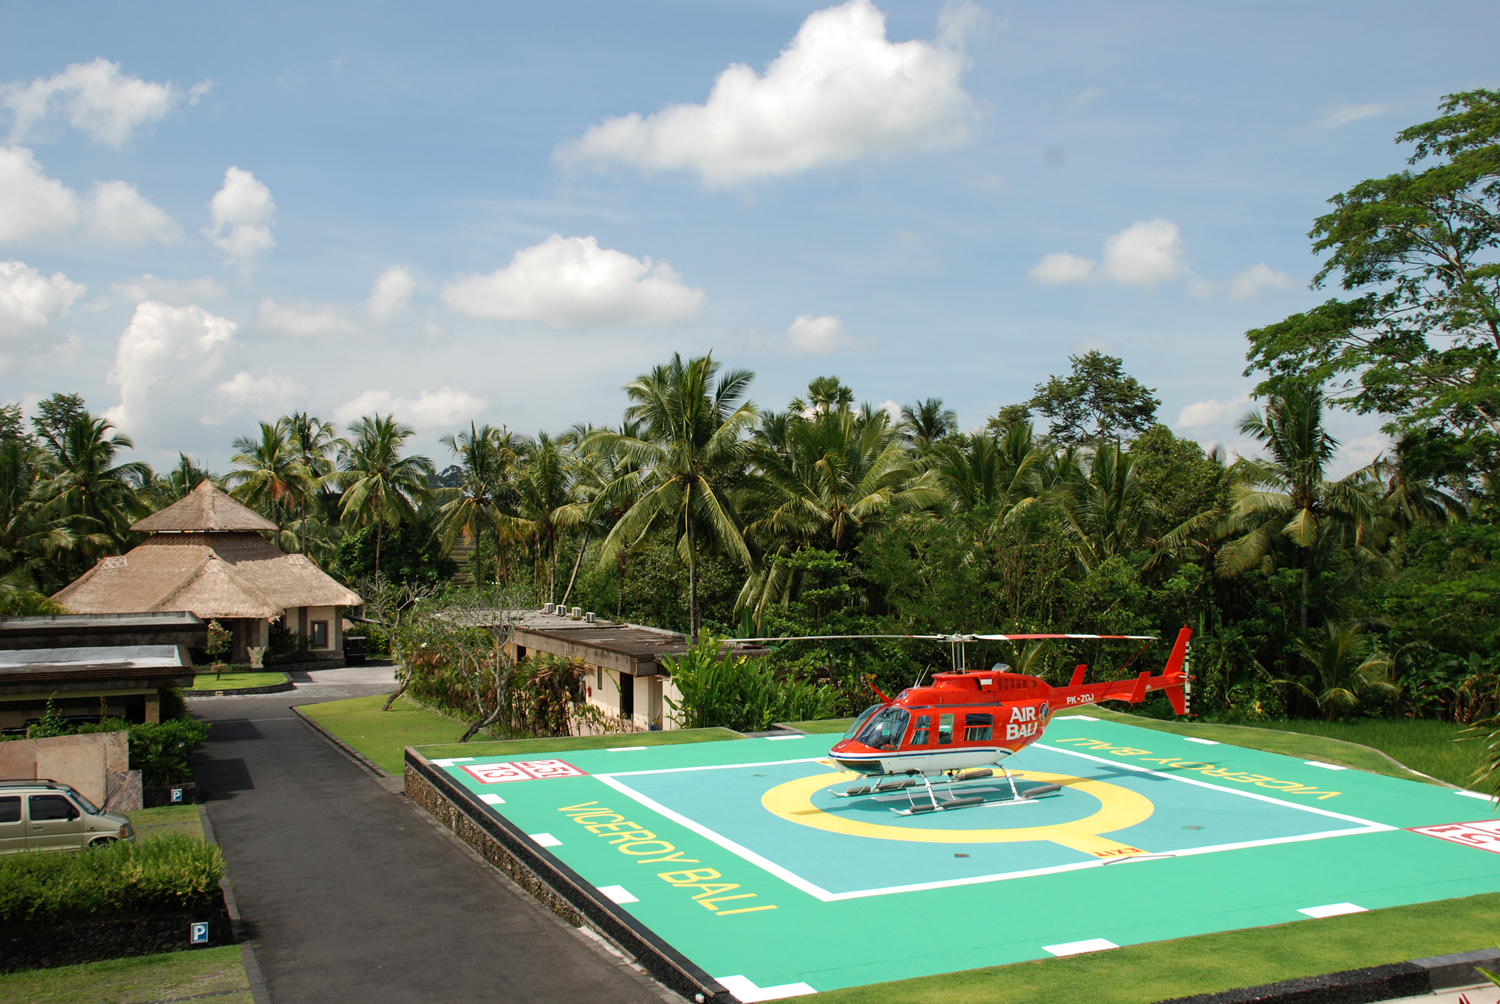 helicopter-pad2-